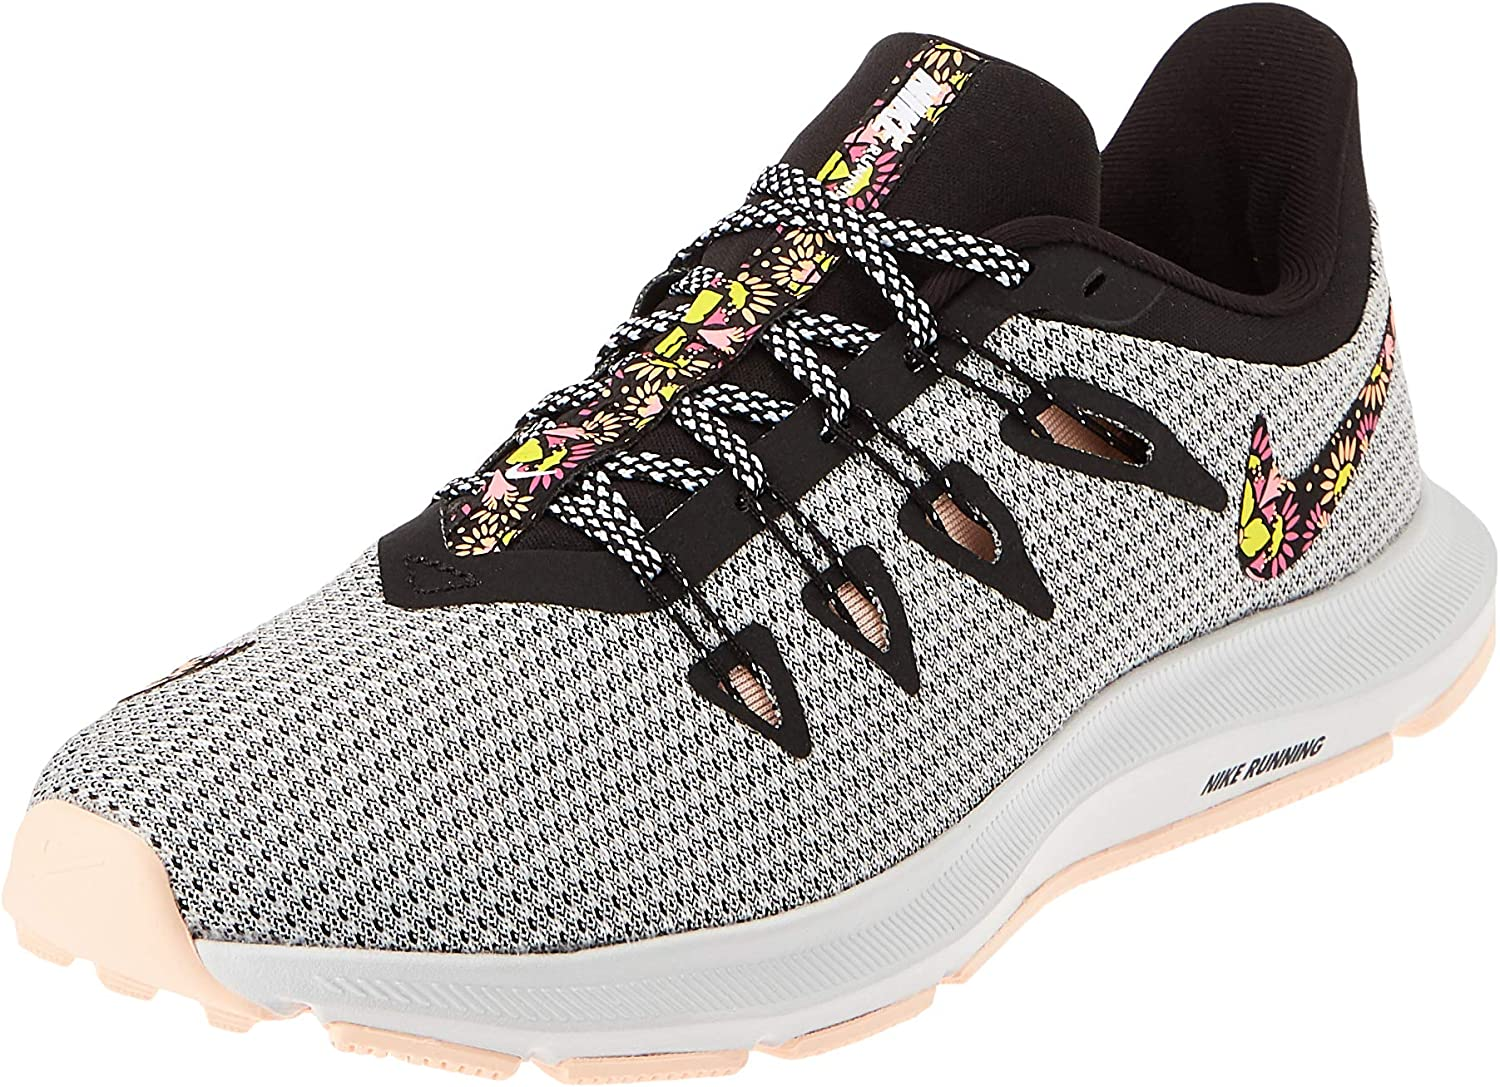 Nike Wmns Quest Se, Zapatillas de Atletismo para Mujer, Multicolor (White/Black/Crimson Tint/Lotus Pink 000), 36 EU: Amazon.es: Zapatos y complementos